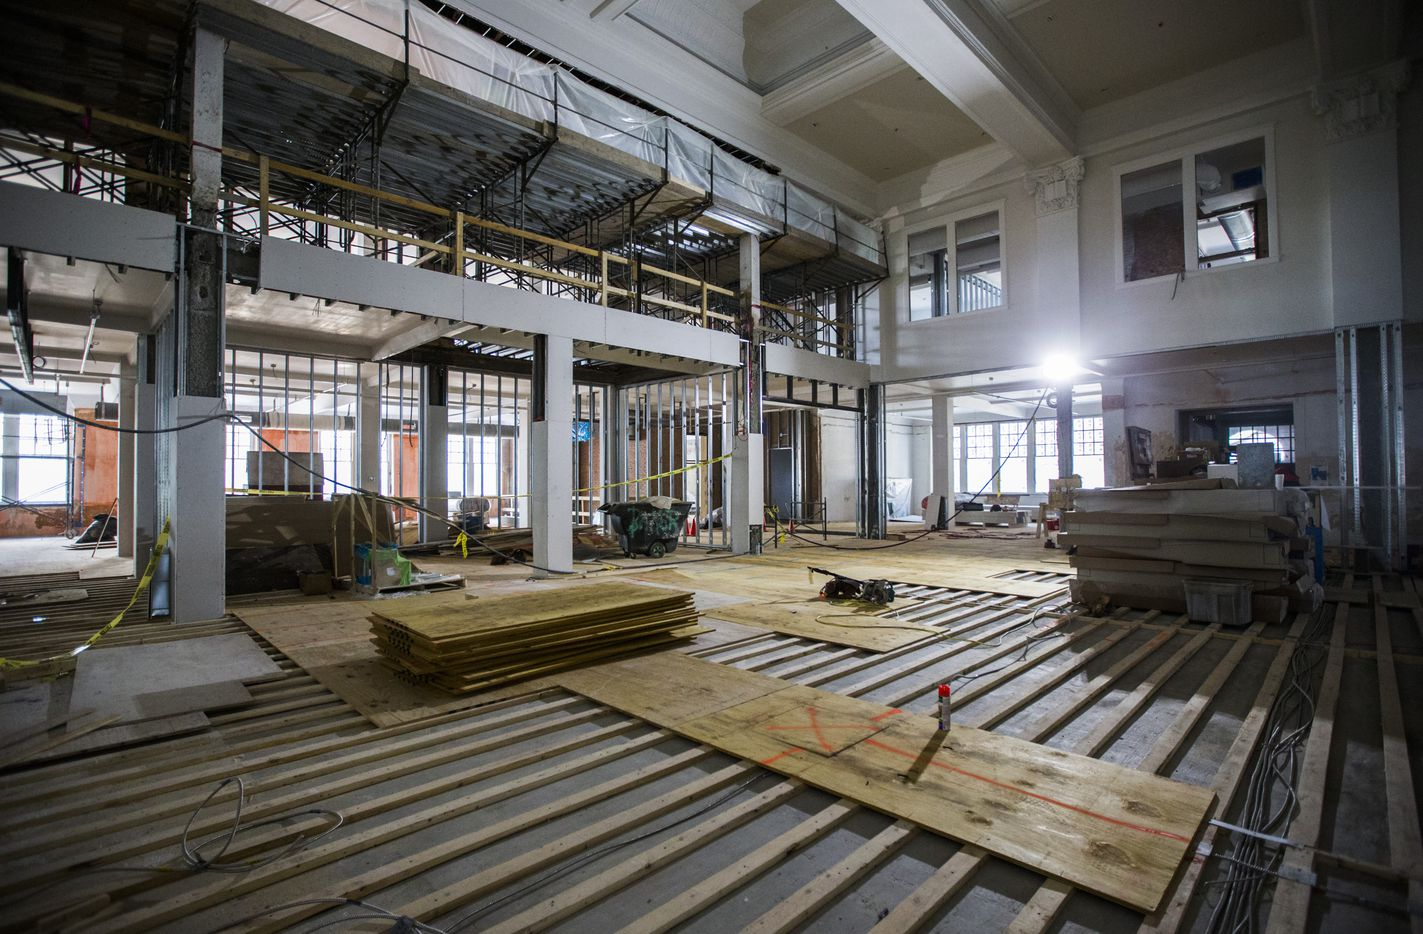 Construction crews converted an old auditorium into a two-story atrium area in the old Dallas High School building on Bryan Street in downtown Dallas.